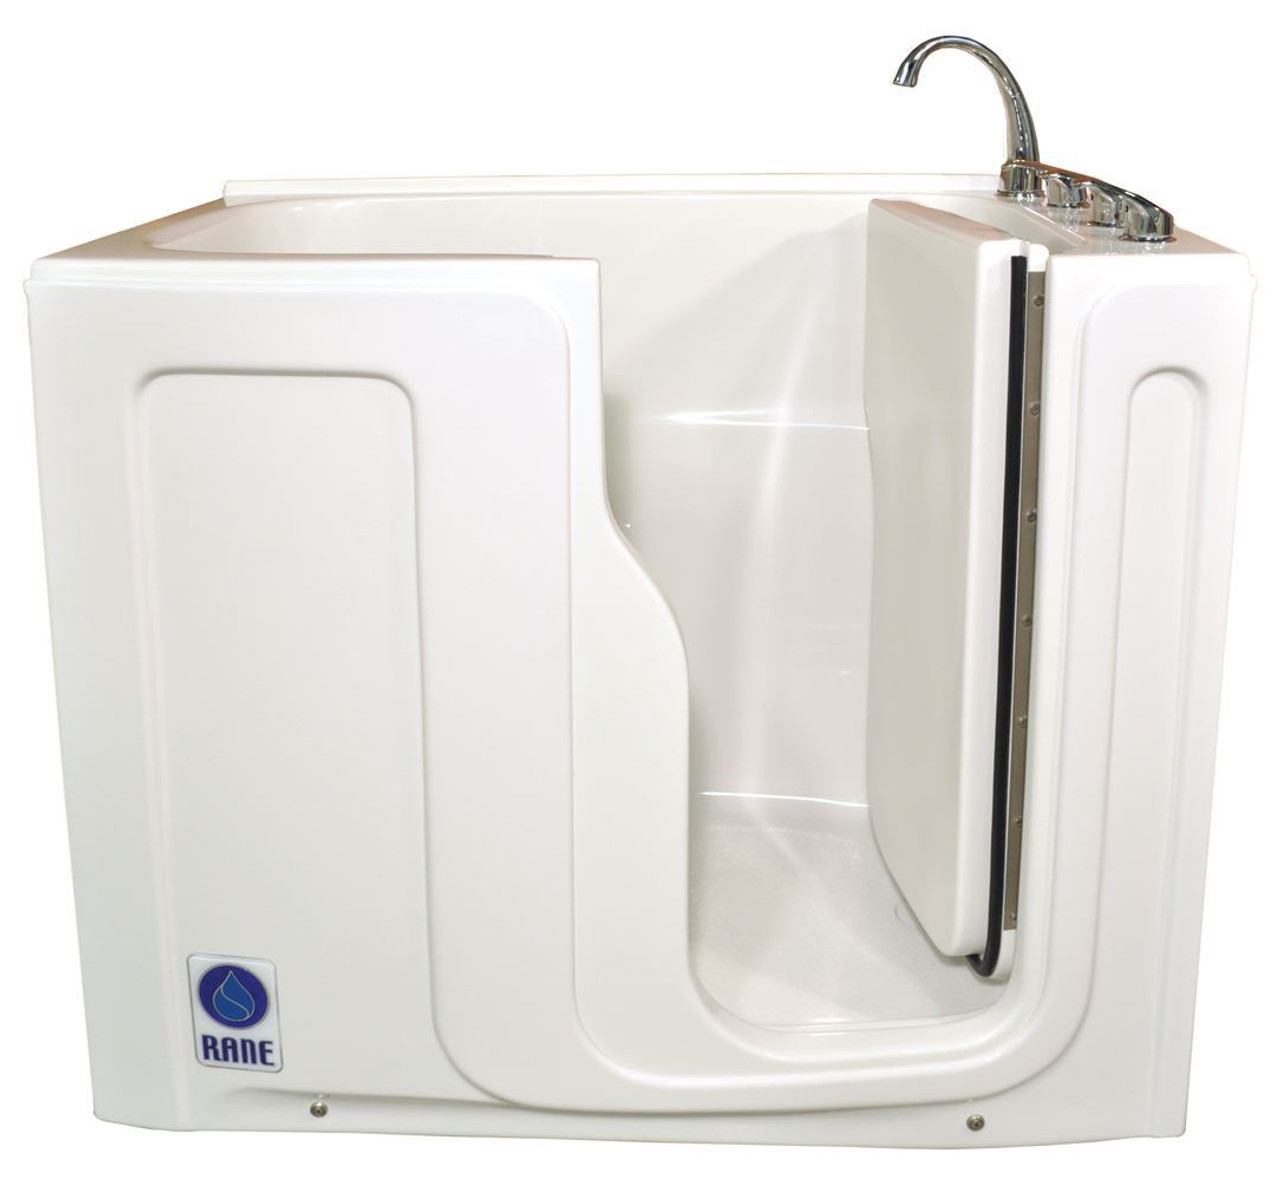 Rane Walk In Tubs Rane Tahoe Is Made In Usa Why Wait